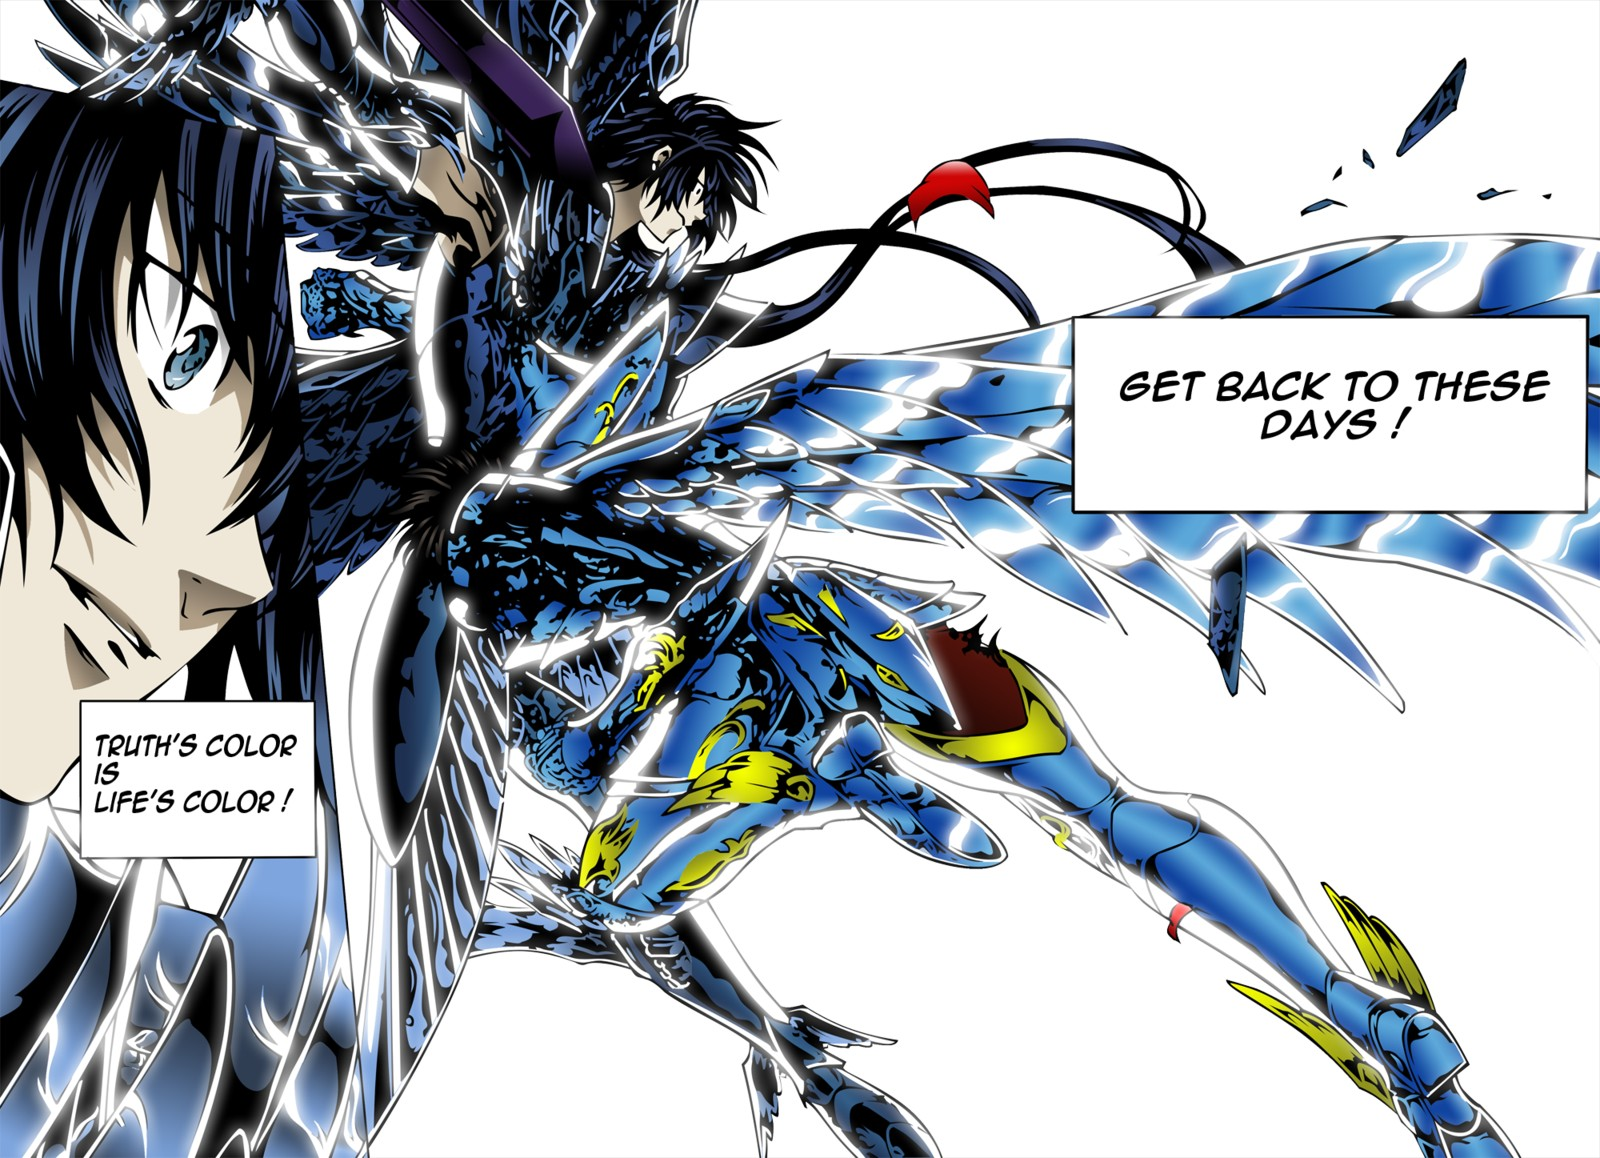 Cdz Lost Canvas 2 Temporada Awesome saint seiya lost canvas | page 8 of 24 - zerochan anime image board